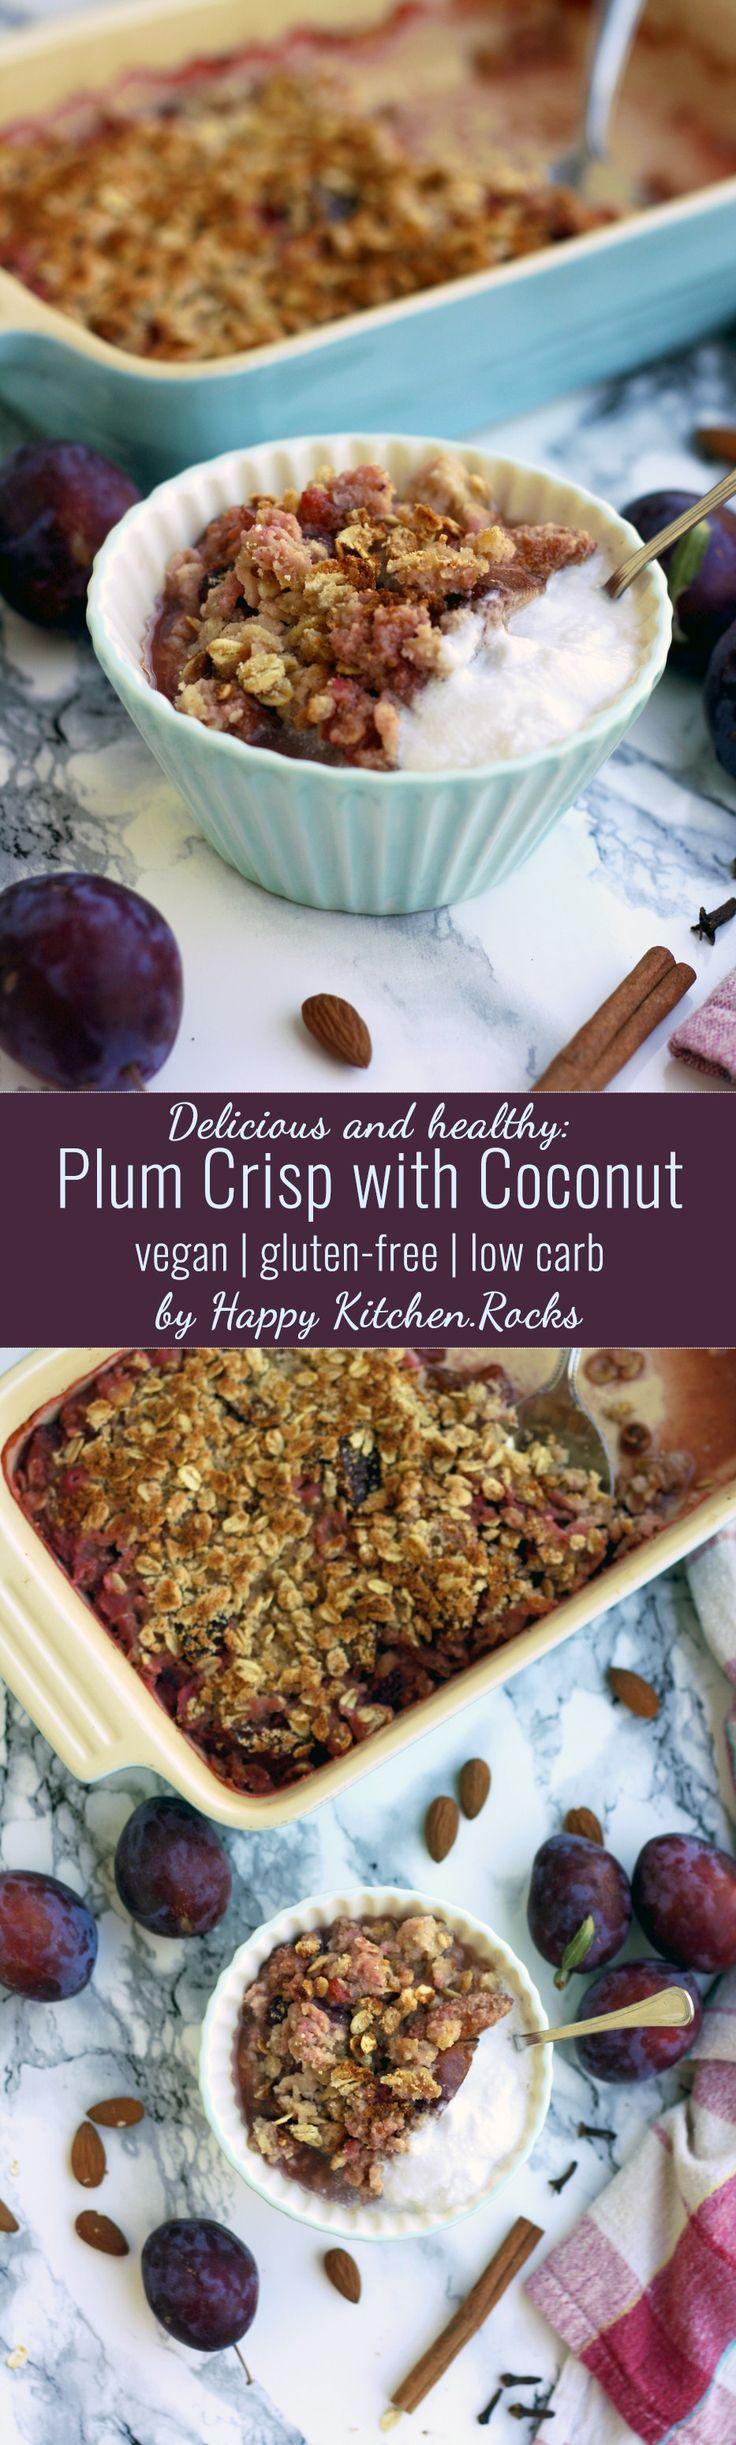 Delicious, vegan and gluten-free plum crisp with coconut makes for a great…